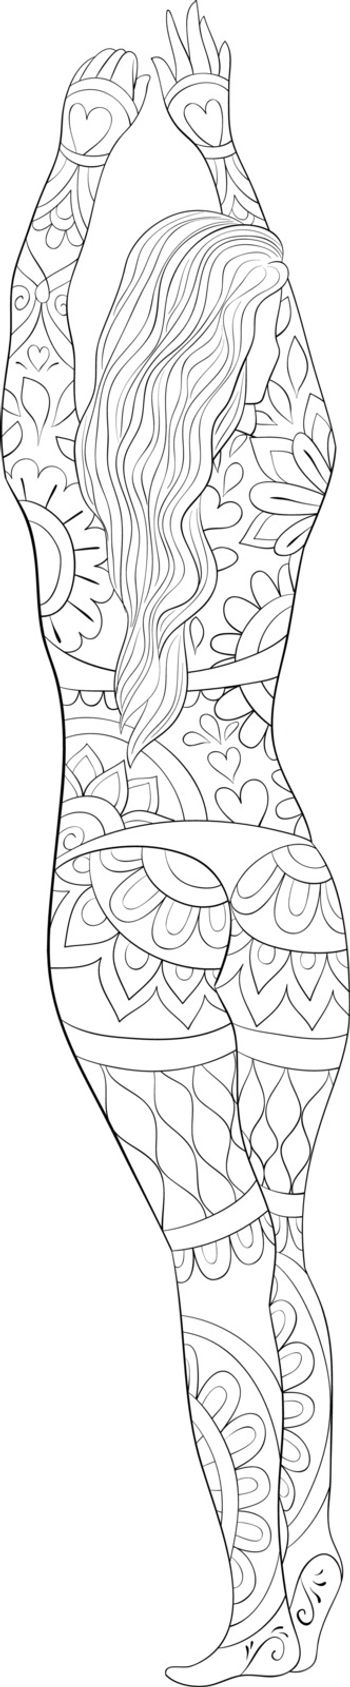 A cute girl with ornaments image for relaxing activity.Coloring book,page for adults.Zen art style illustration for print.Poster design.